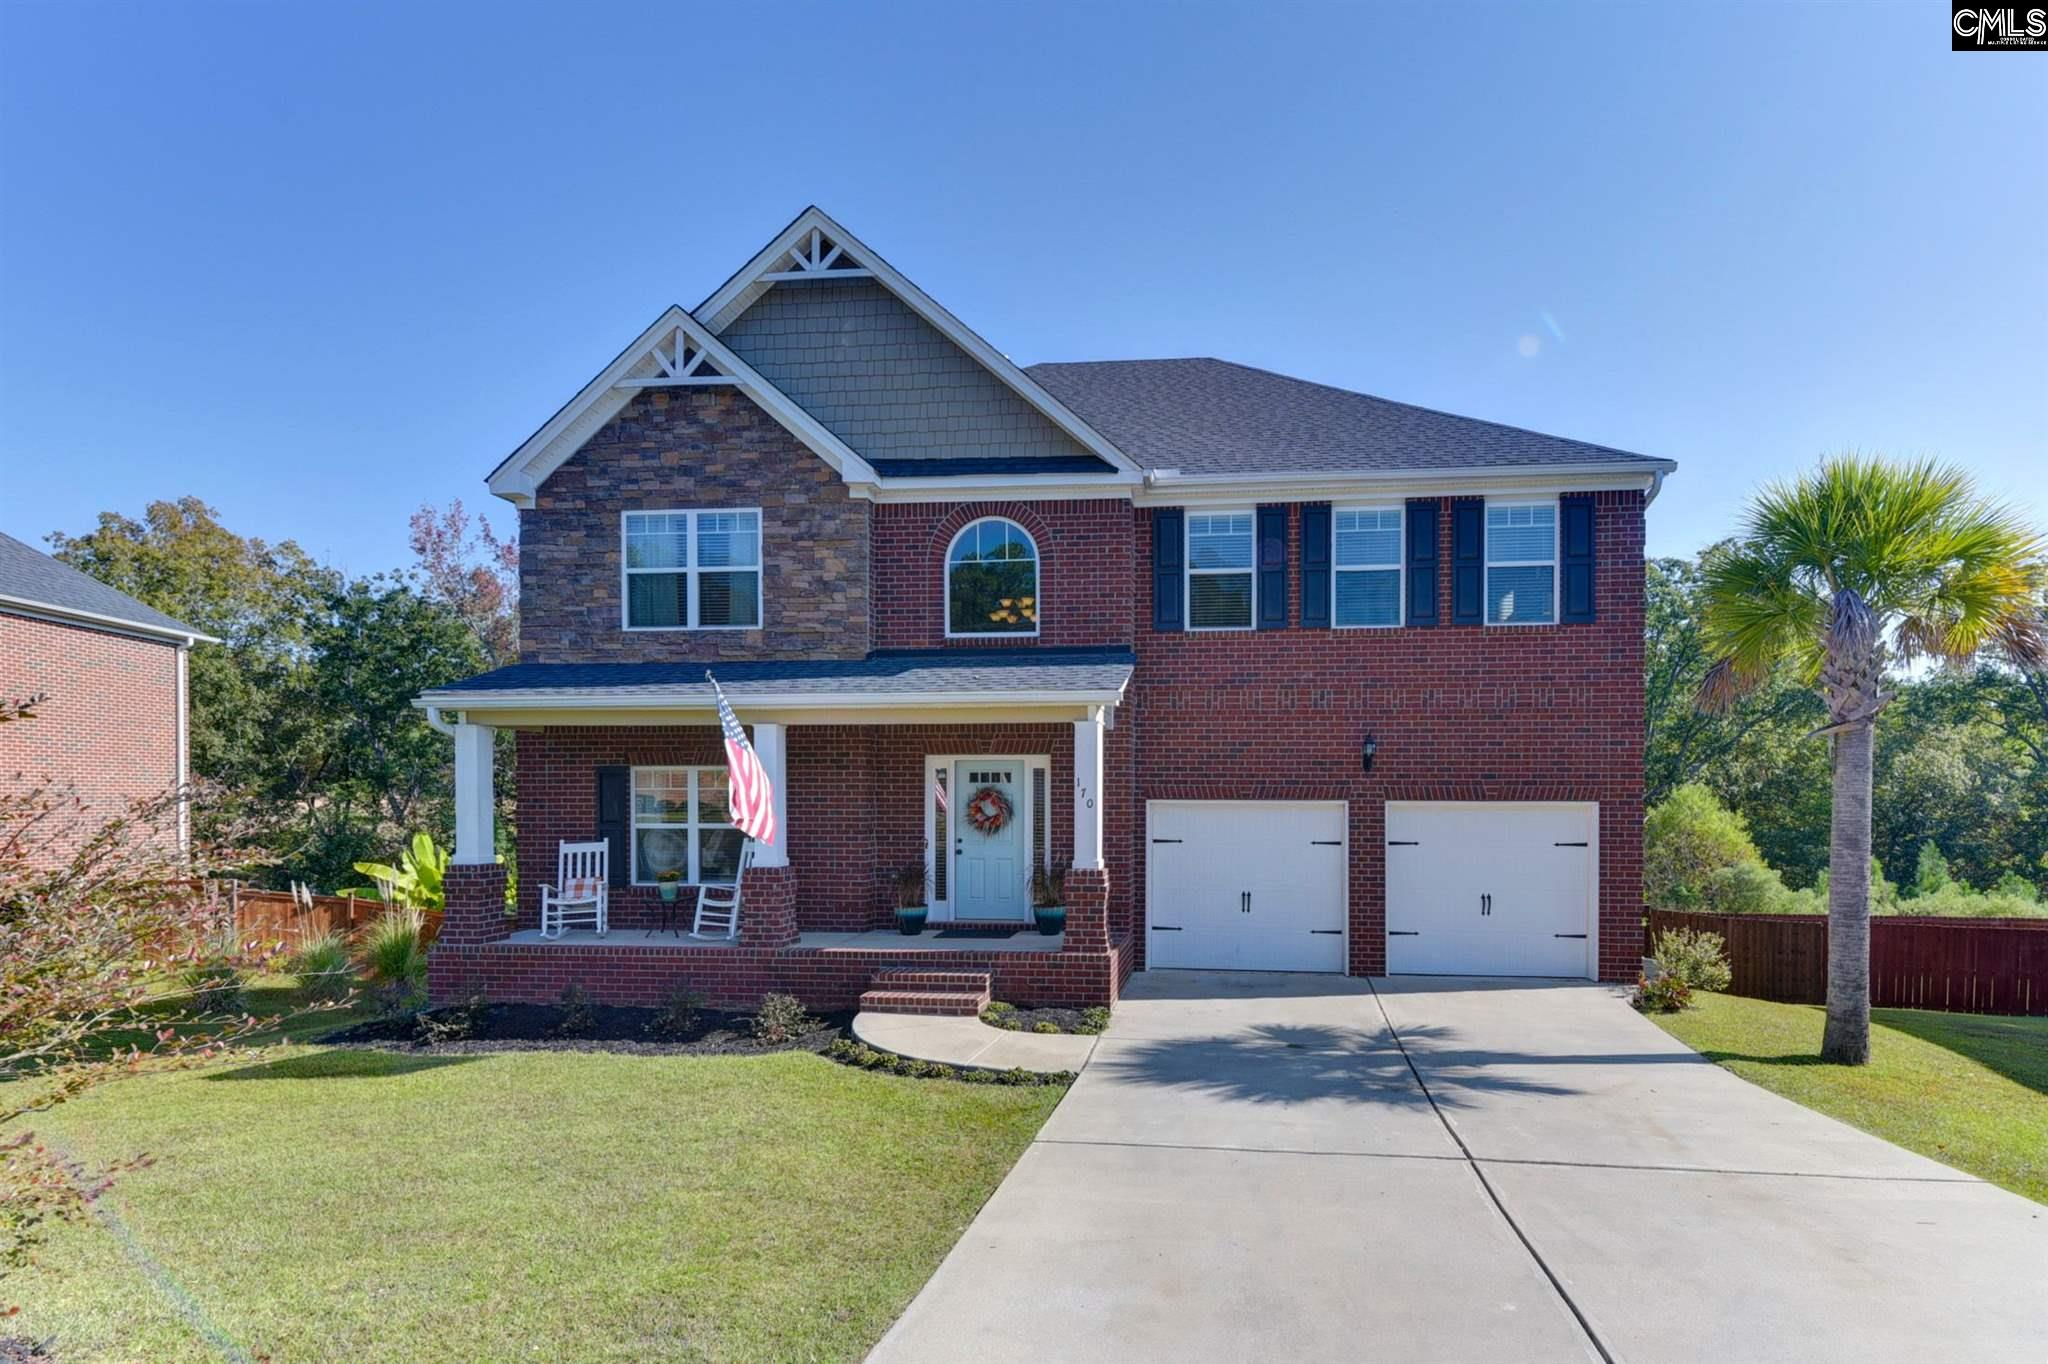 170 Hope Springs Lexington, SC 29072